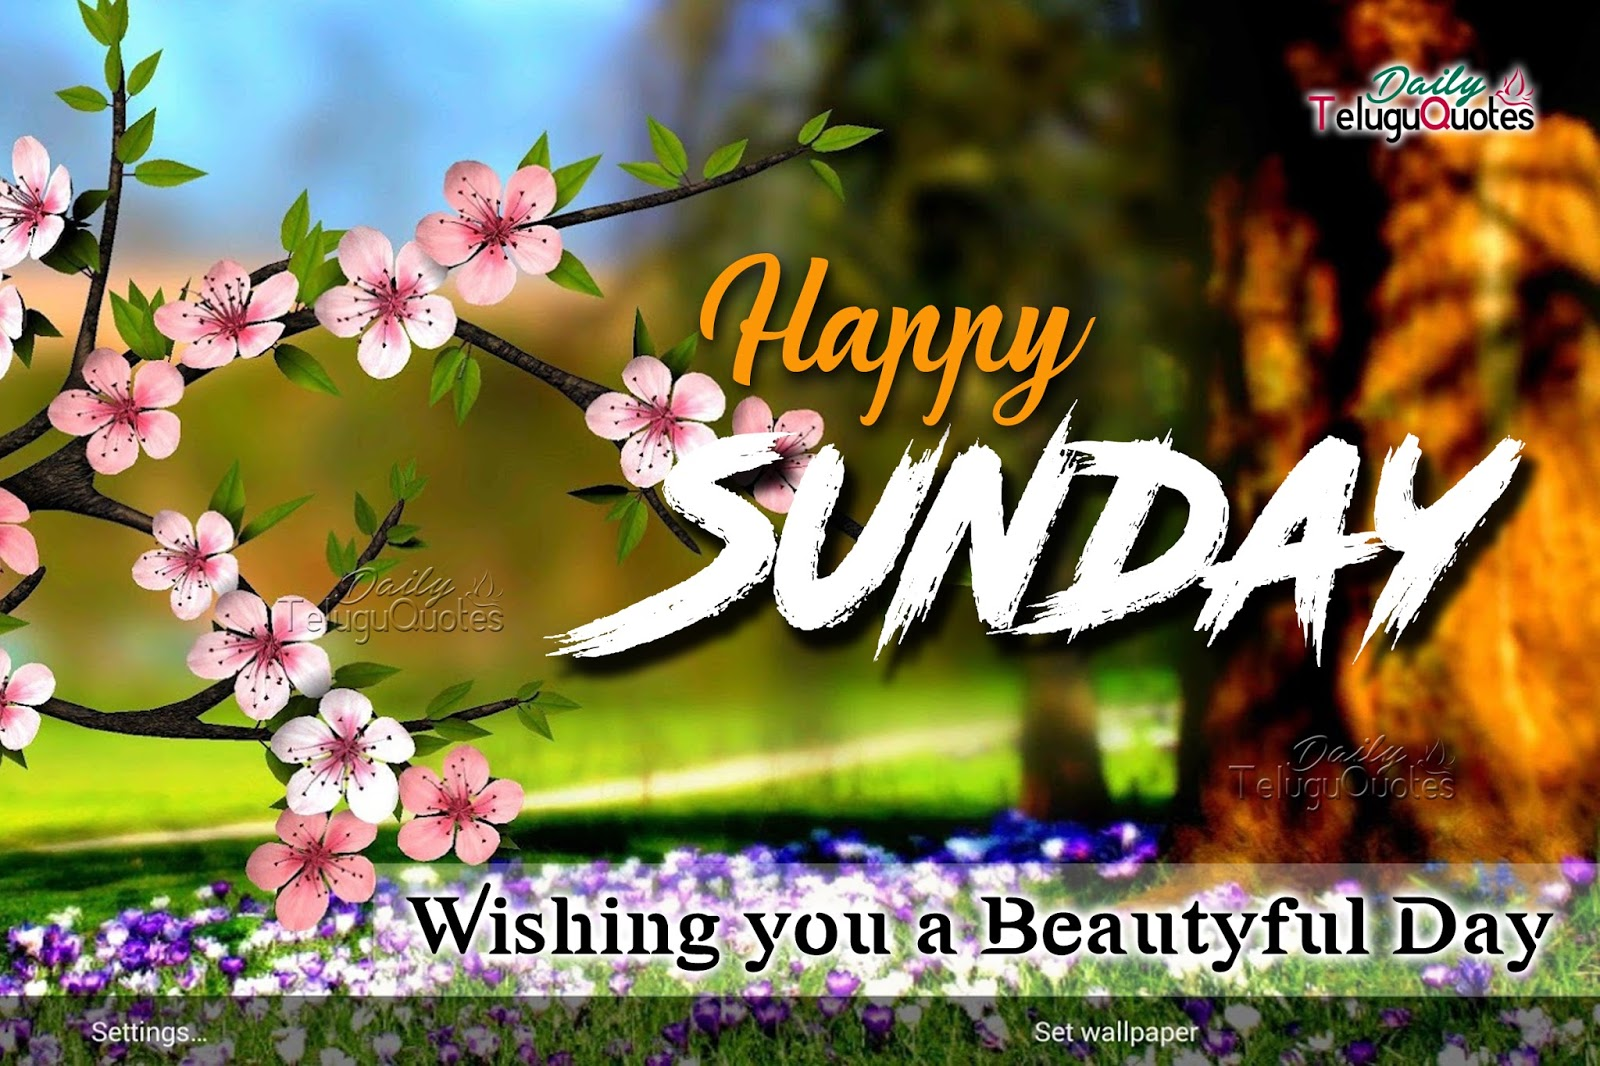 Sunday Quotes Images Happy Sunday Quotes And Sayings Hd Wallpapers  Dailyteluguquotes